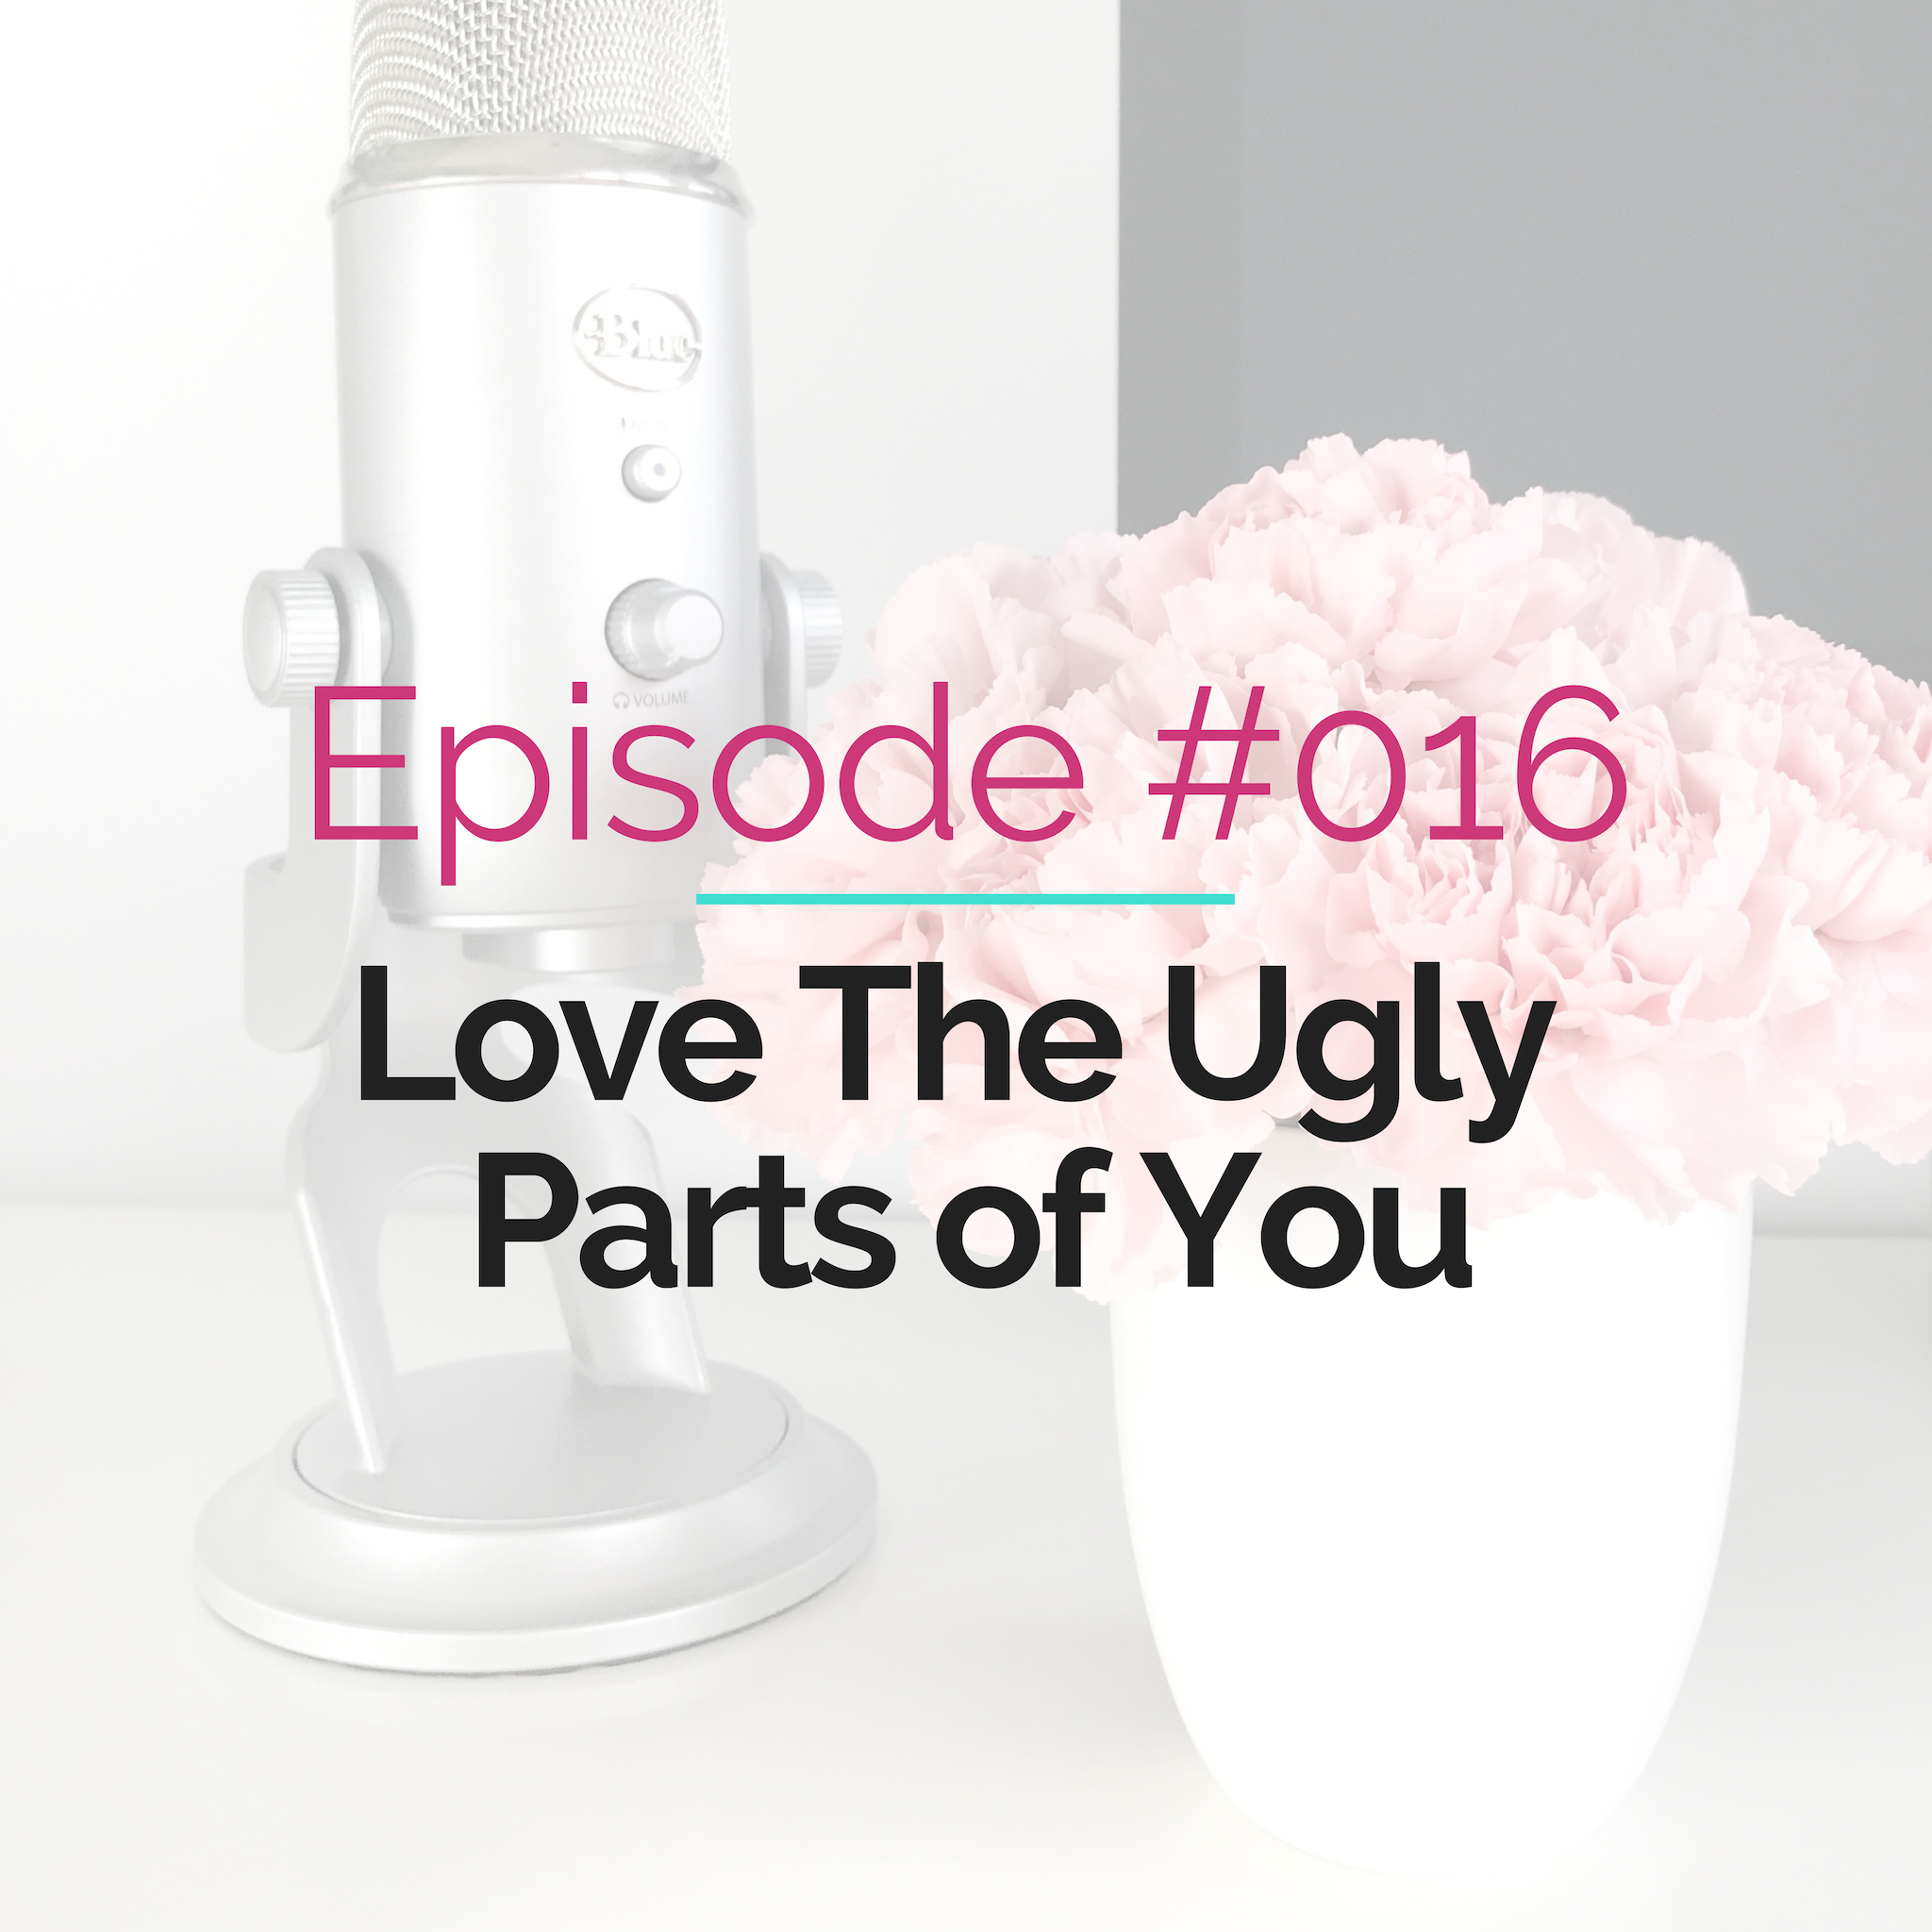 Love The Ugly Parts of You